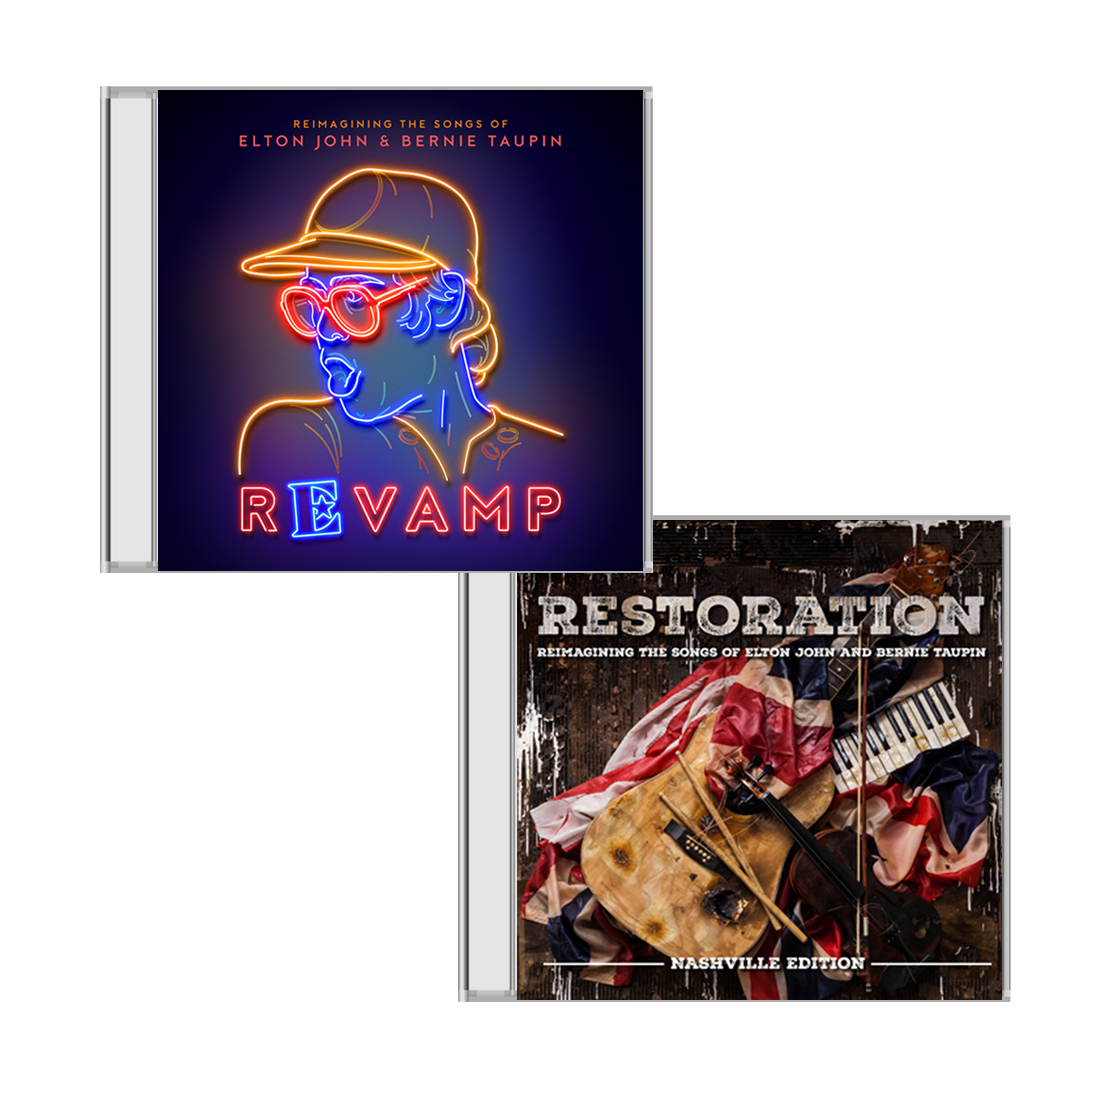 Elton John: 'Revamp' & 'Restoration' CD Collection